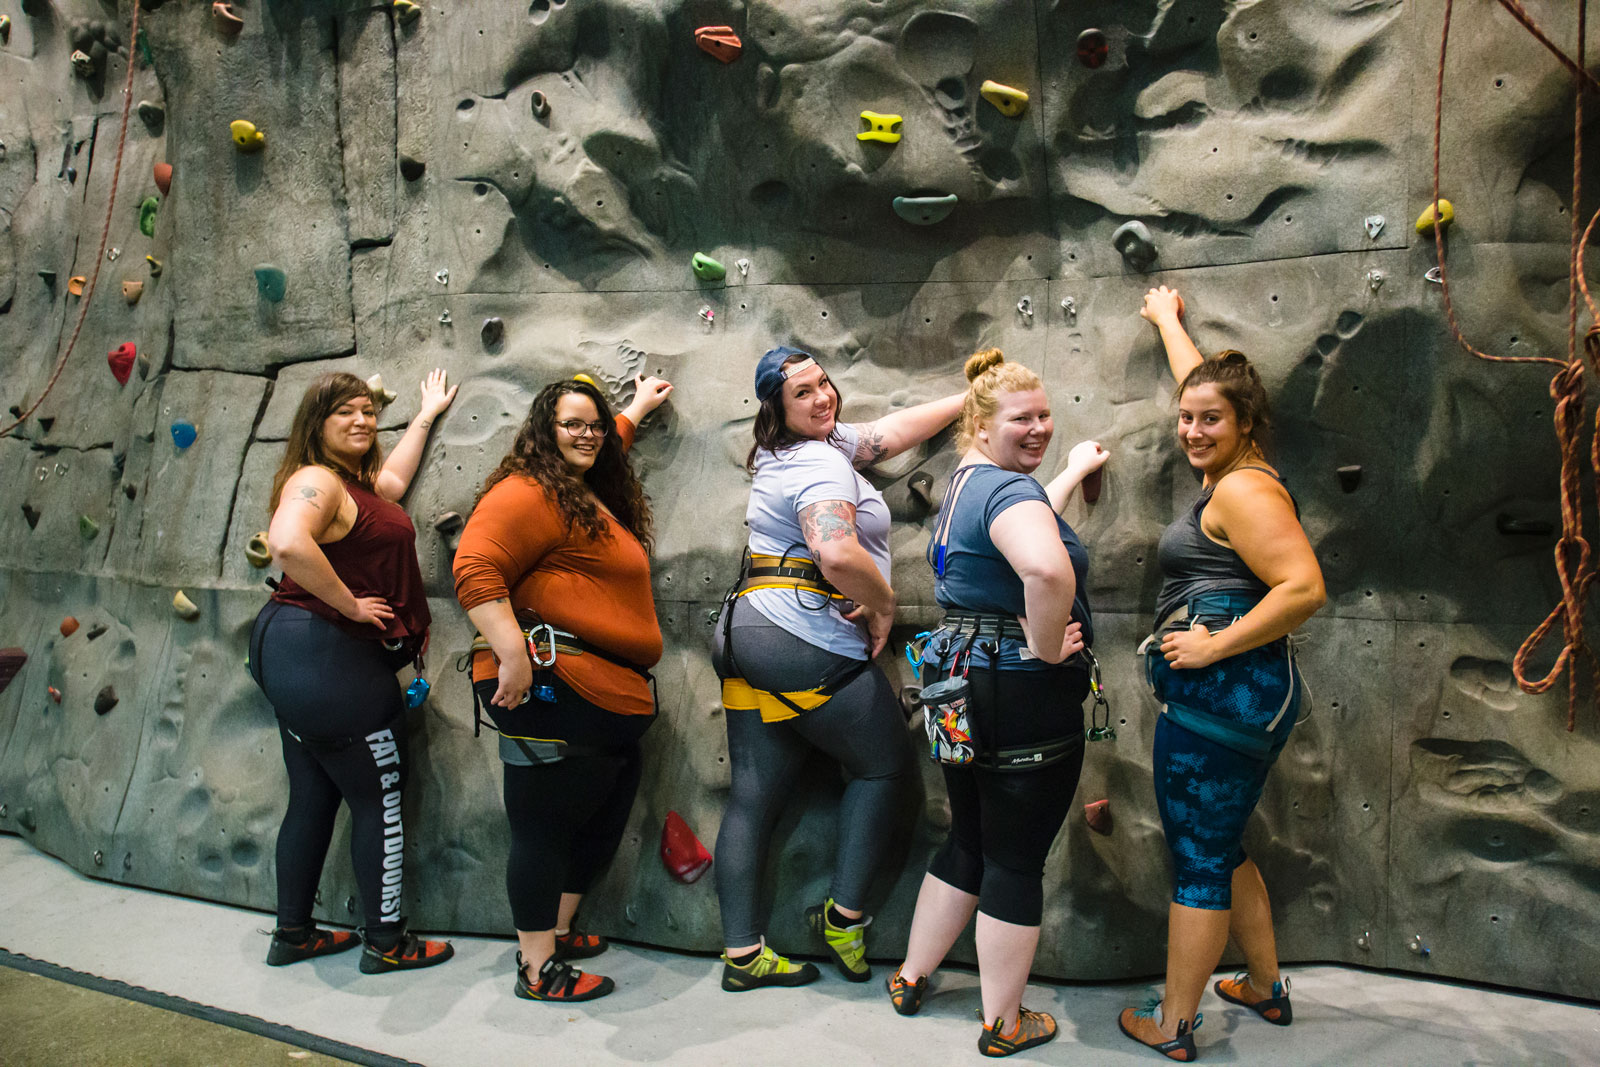 5 fat women standing by a rock wall